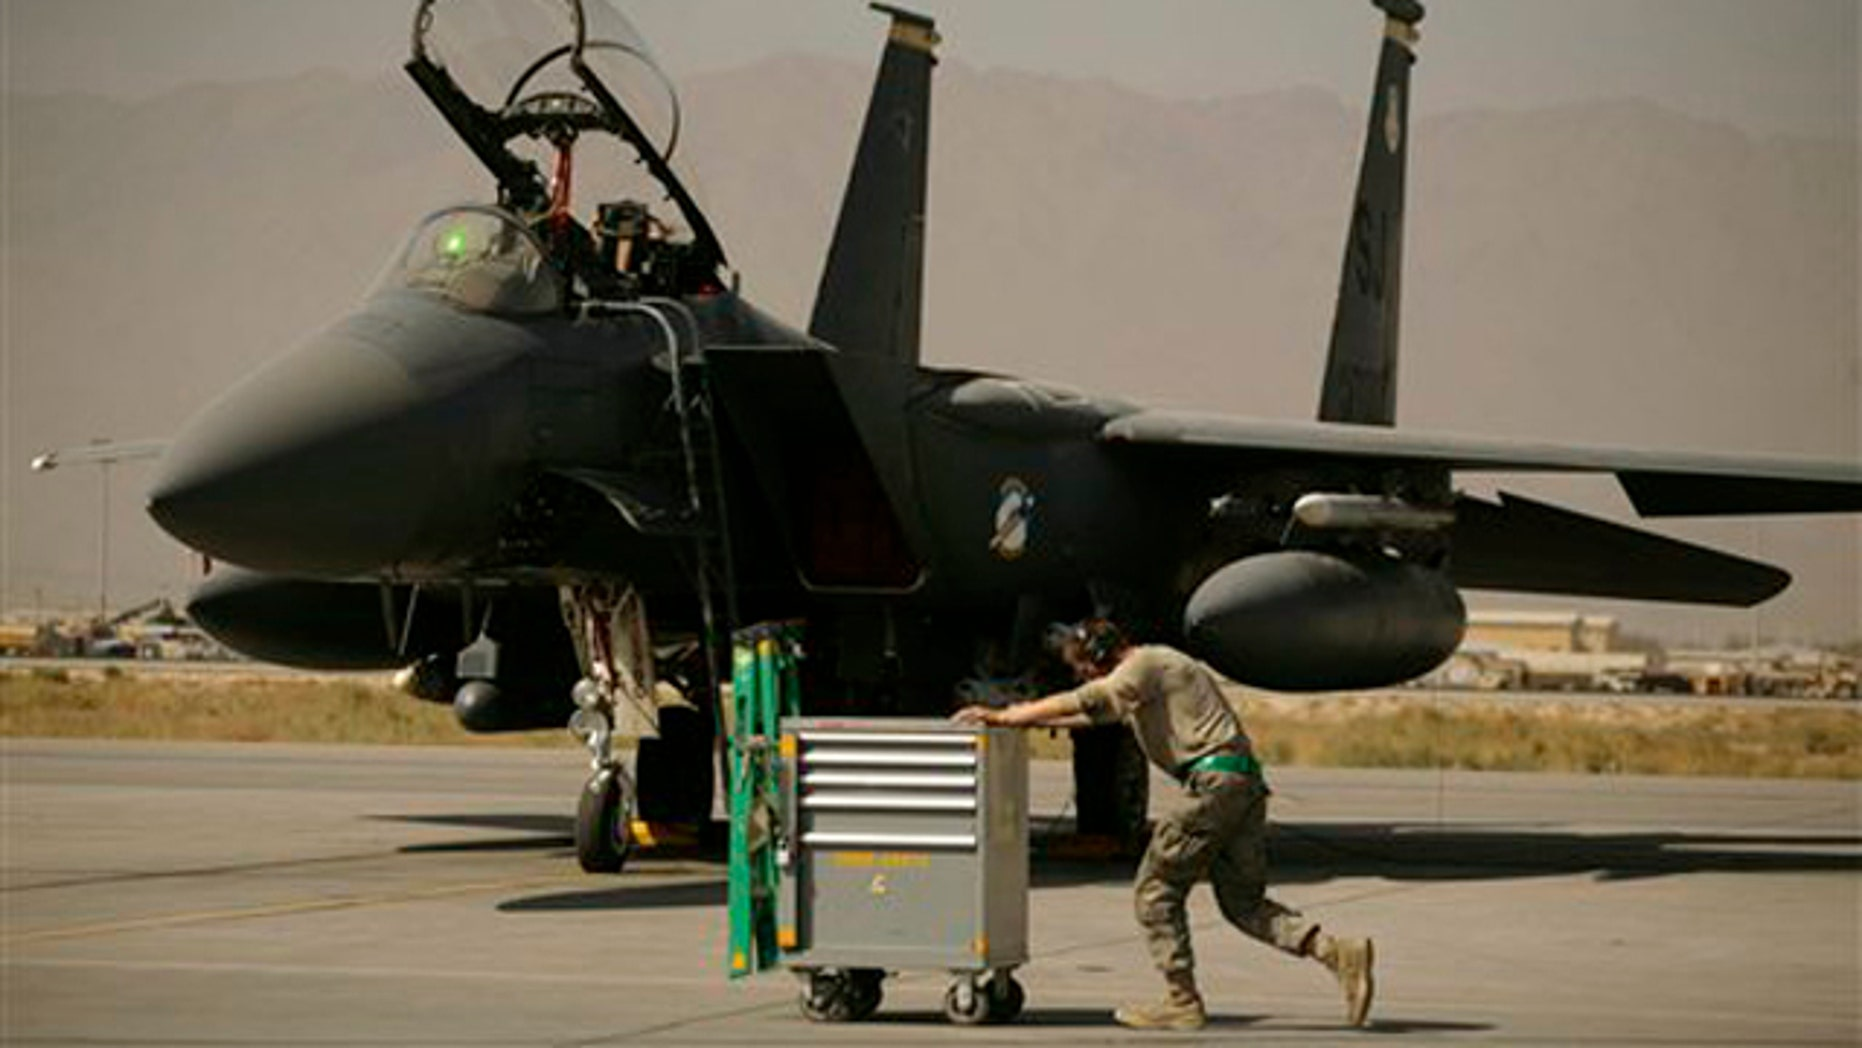 In this Oct. 17 picture, a U.S. Air Force airman passes an F-15E Strike Eagle at Bagram Air Field in Afghanistan. (AP Photo)